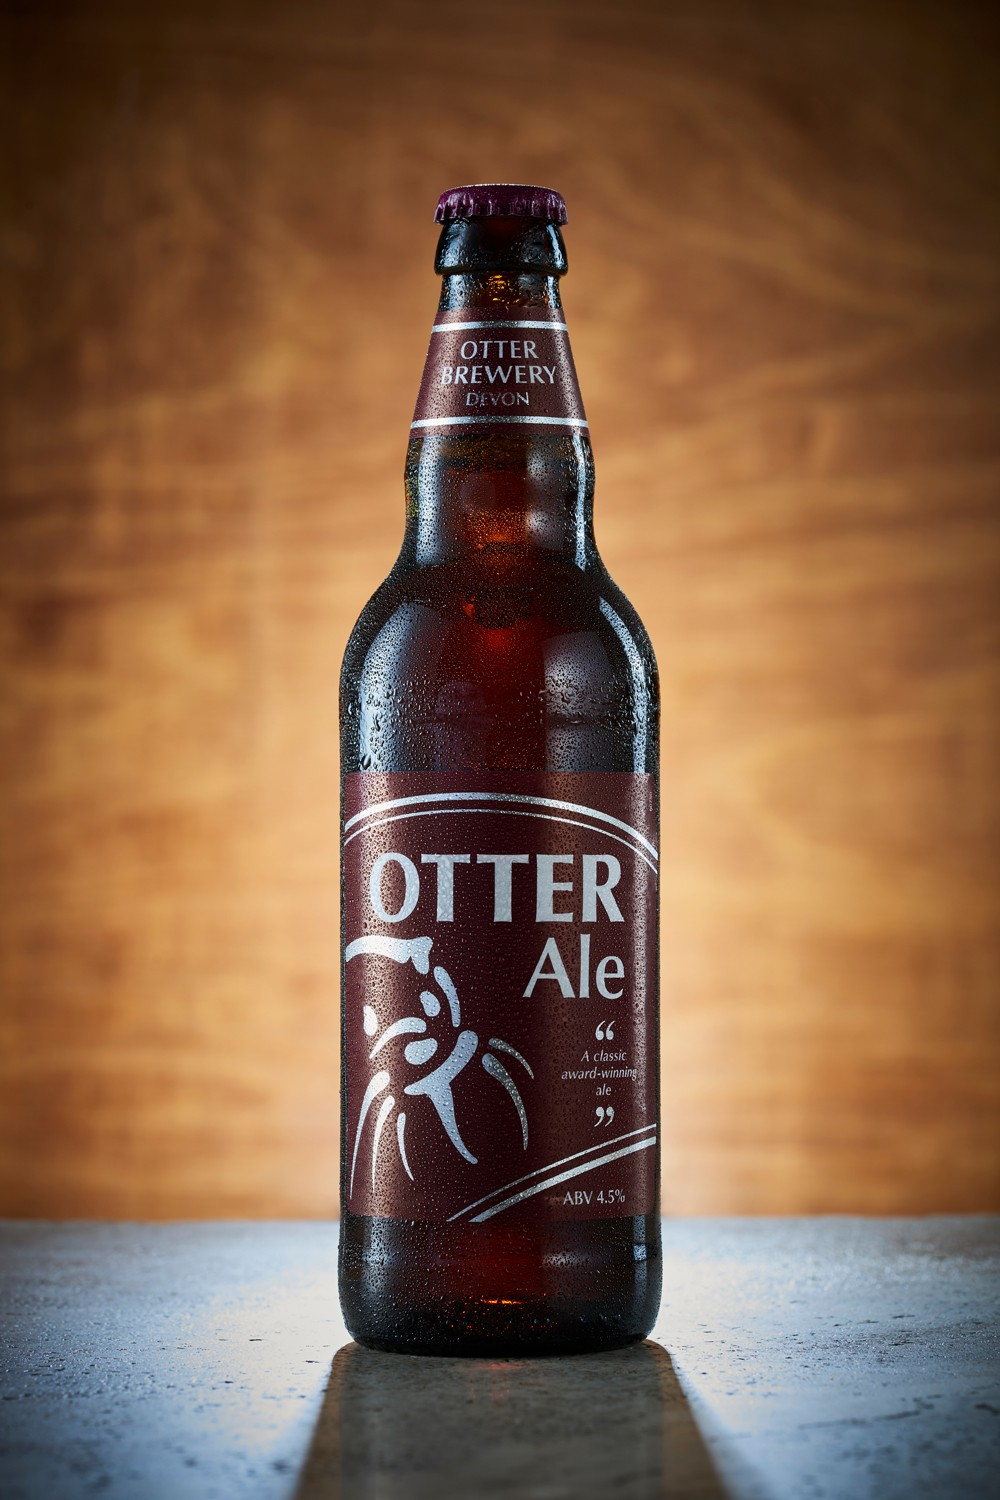 Otter Ale bottled beer